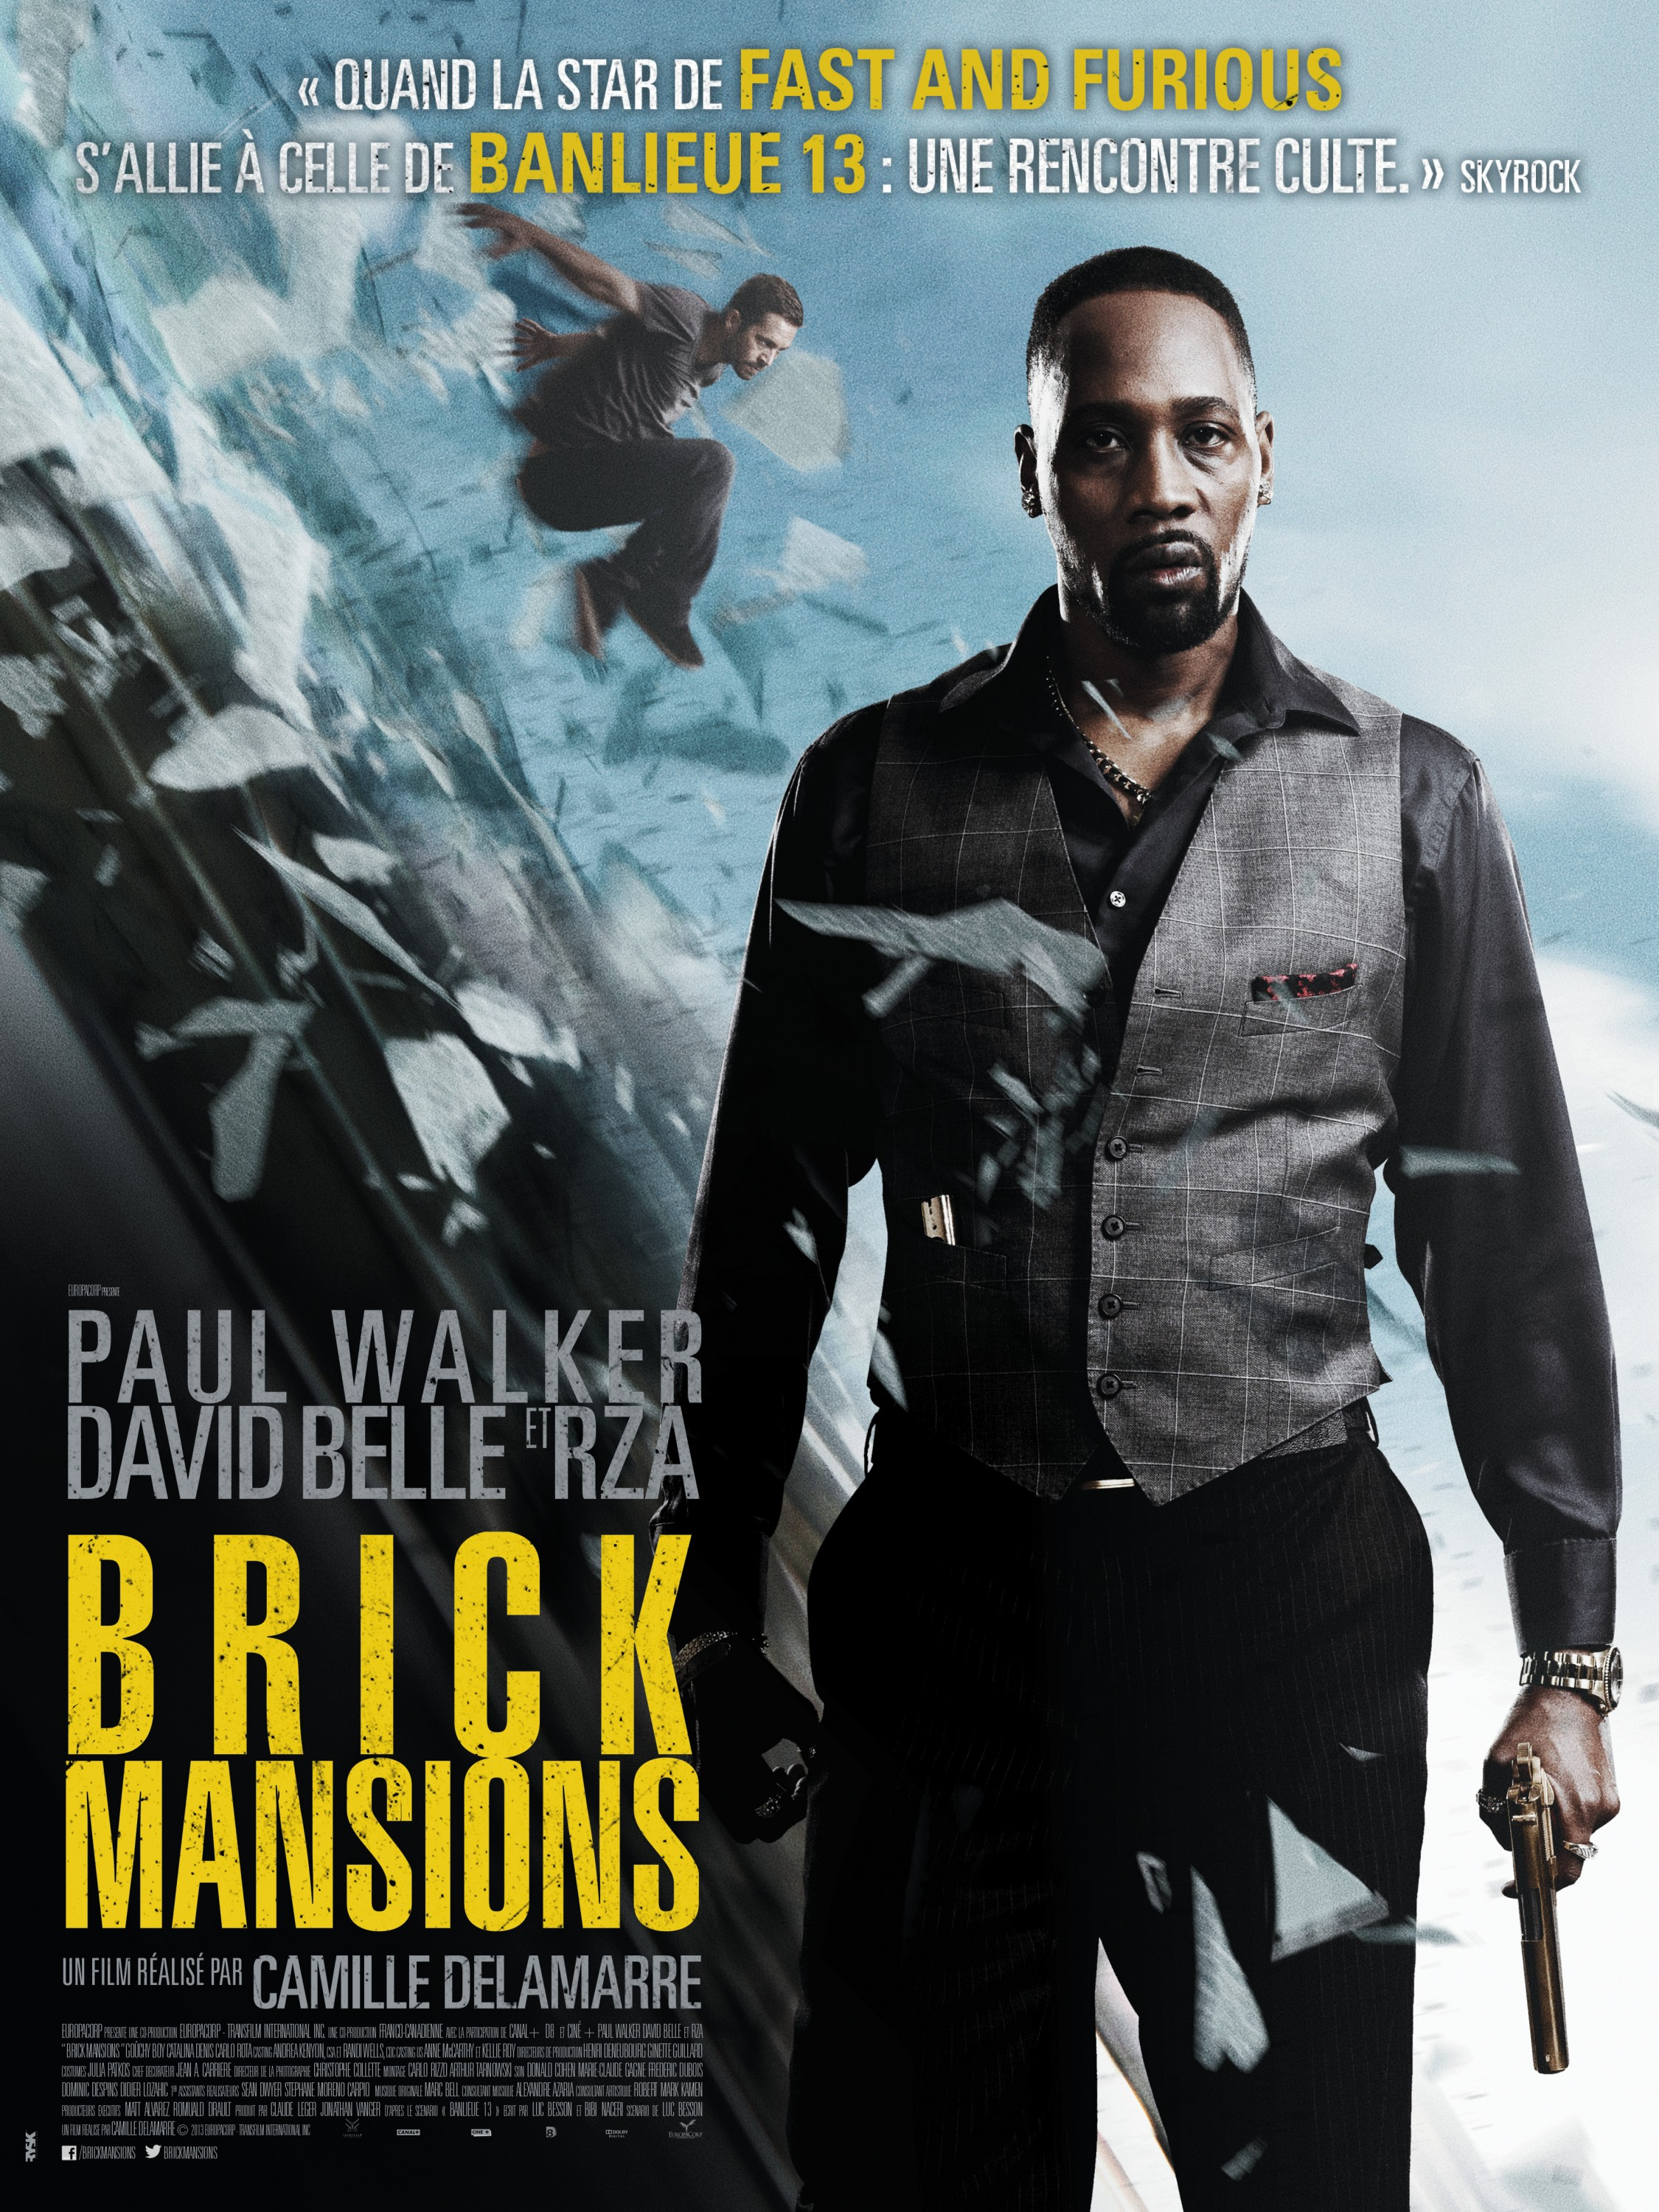 Brick Mansions-Official Poster Banner PROMO POSTER XLG-12MARCO2014-03